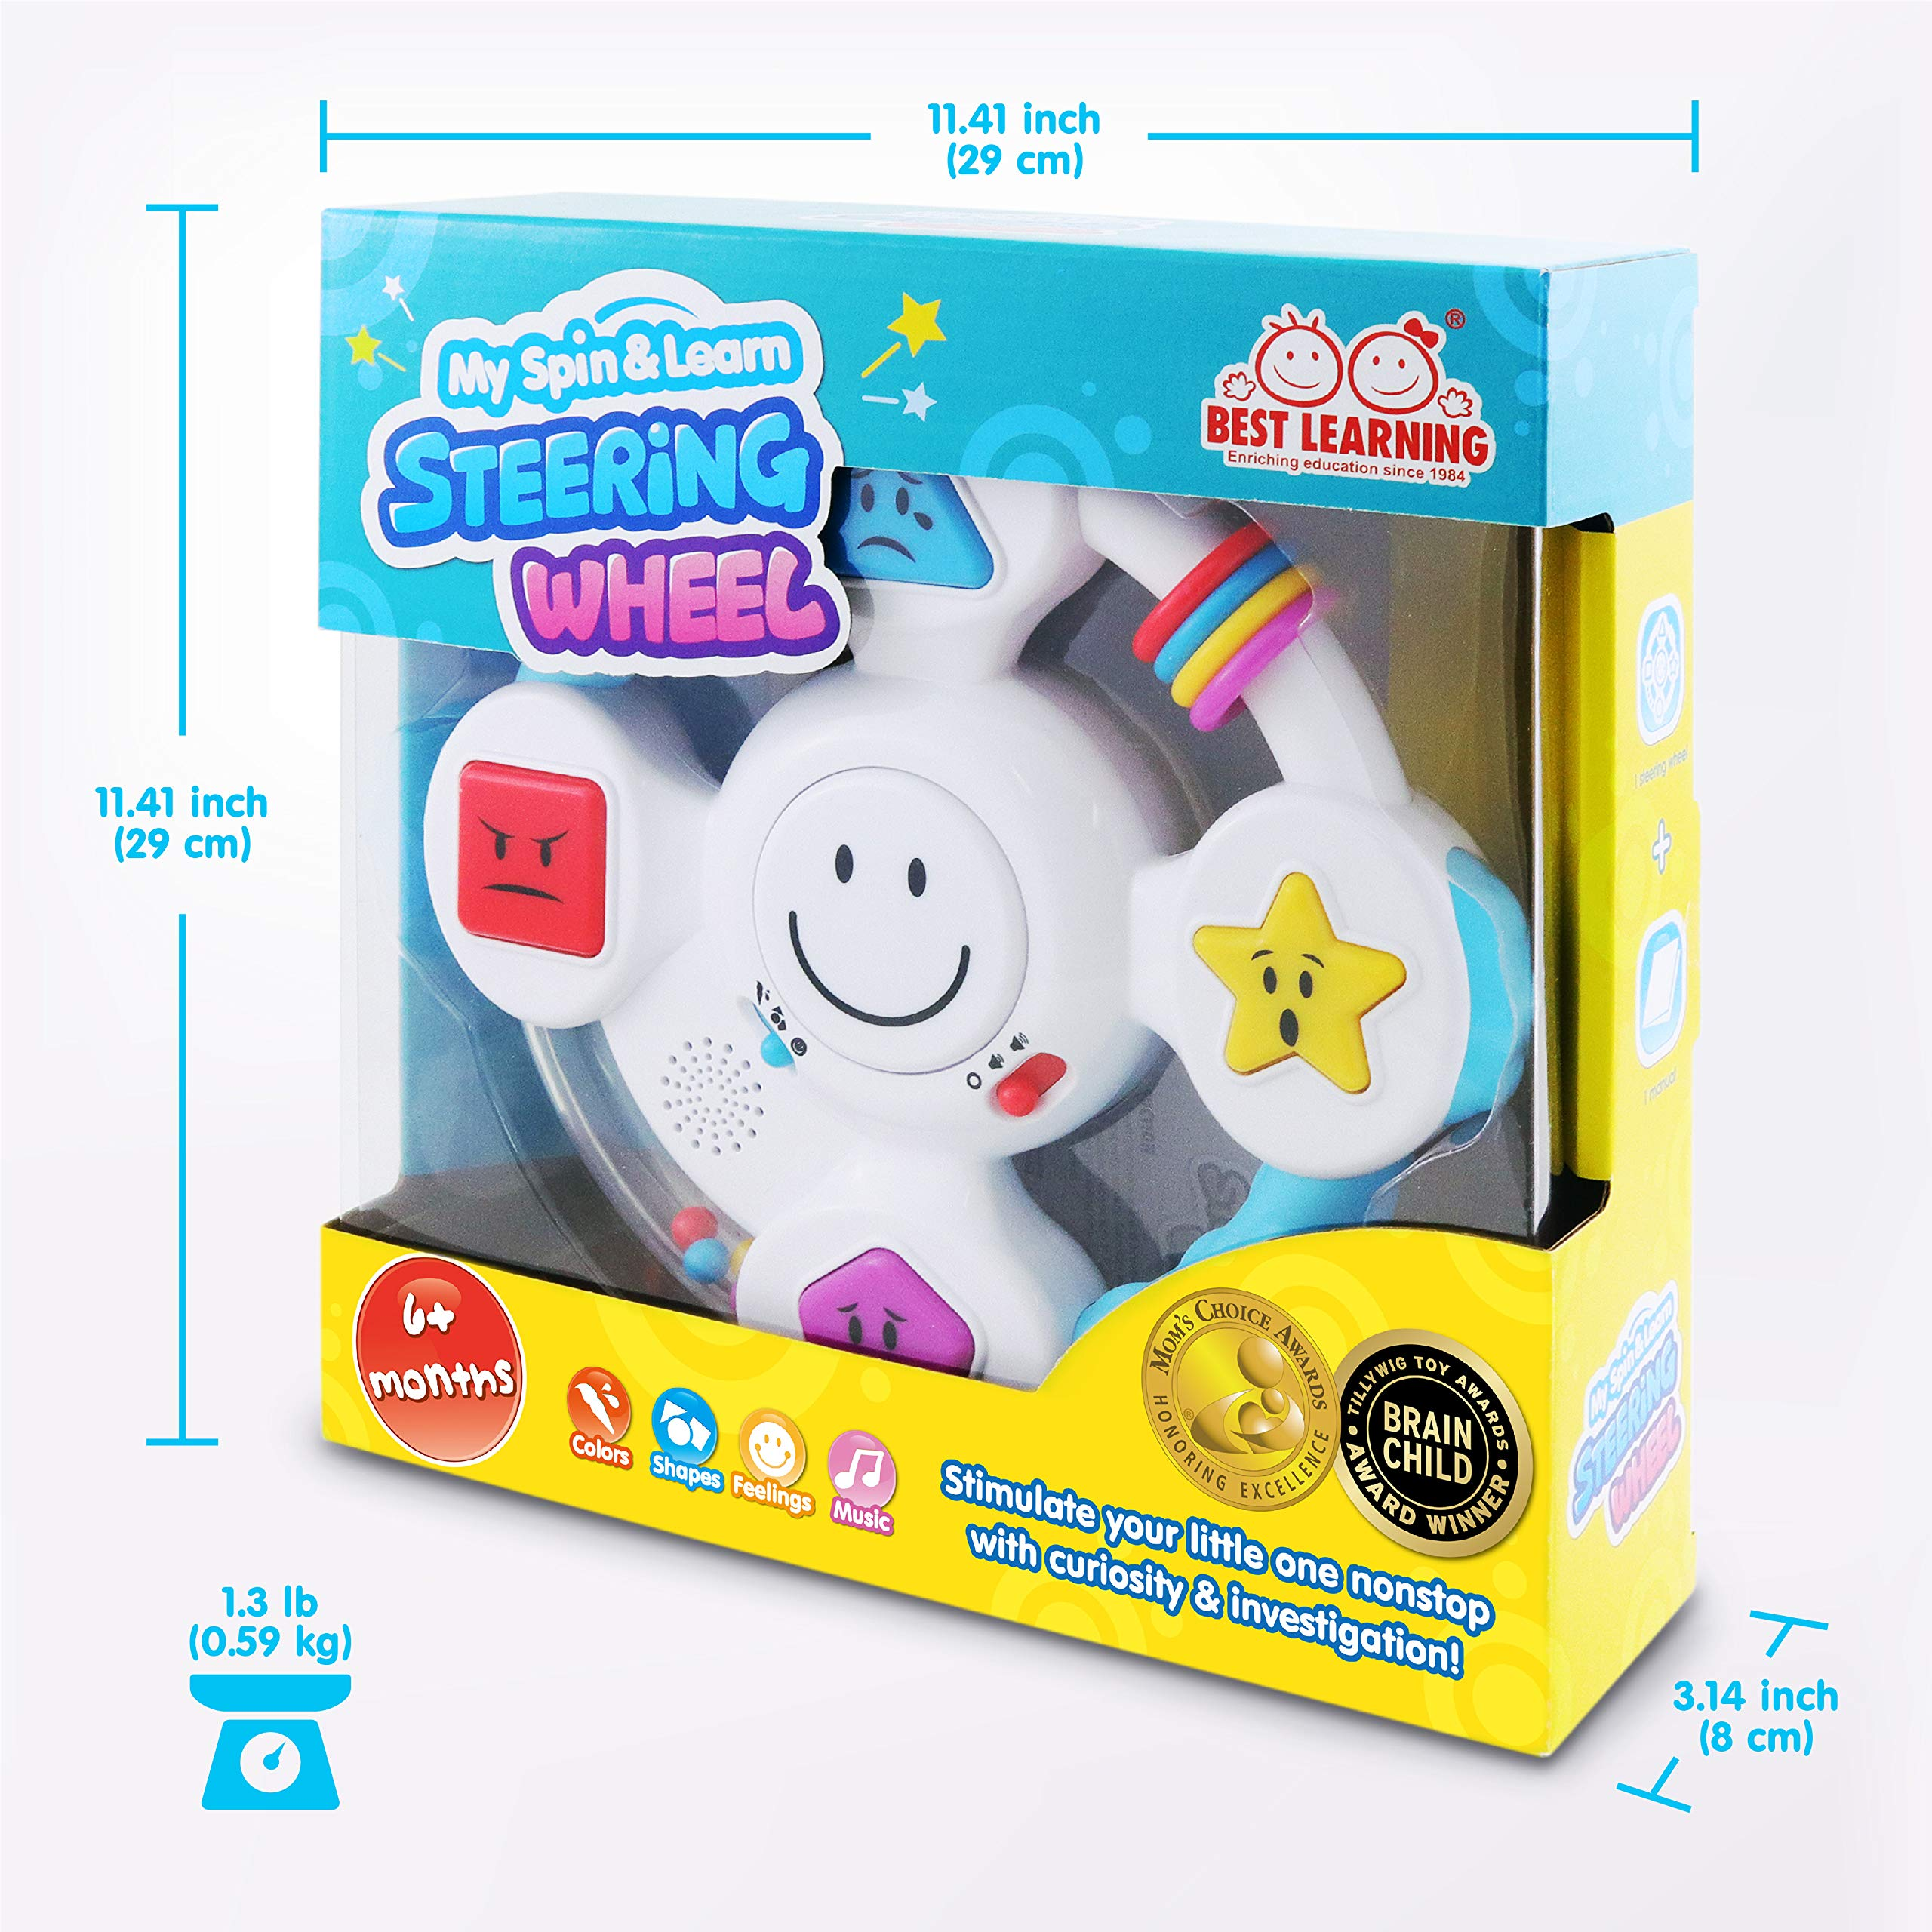 BEST LEARNING My Spin & Learn Steering Wheel - Interactive Educational Light-Up Toddler Toys for 6-36 Months Old Infants & Toddlers - Colors, Shapes, Emotions & Music Game for Babies by BEST LEARNING (Image #7)